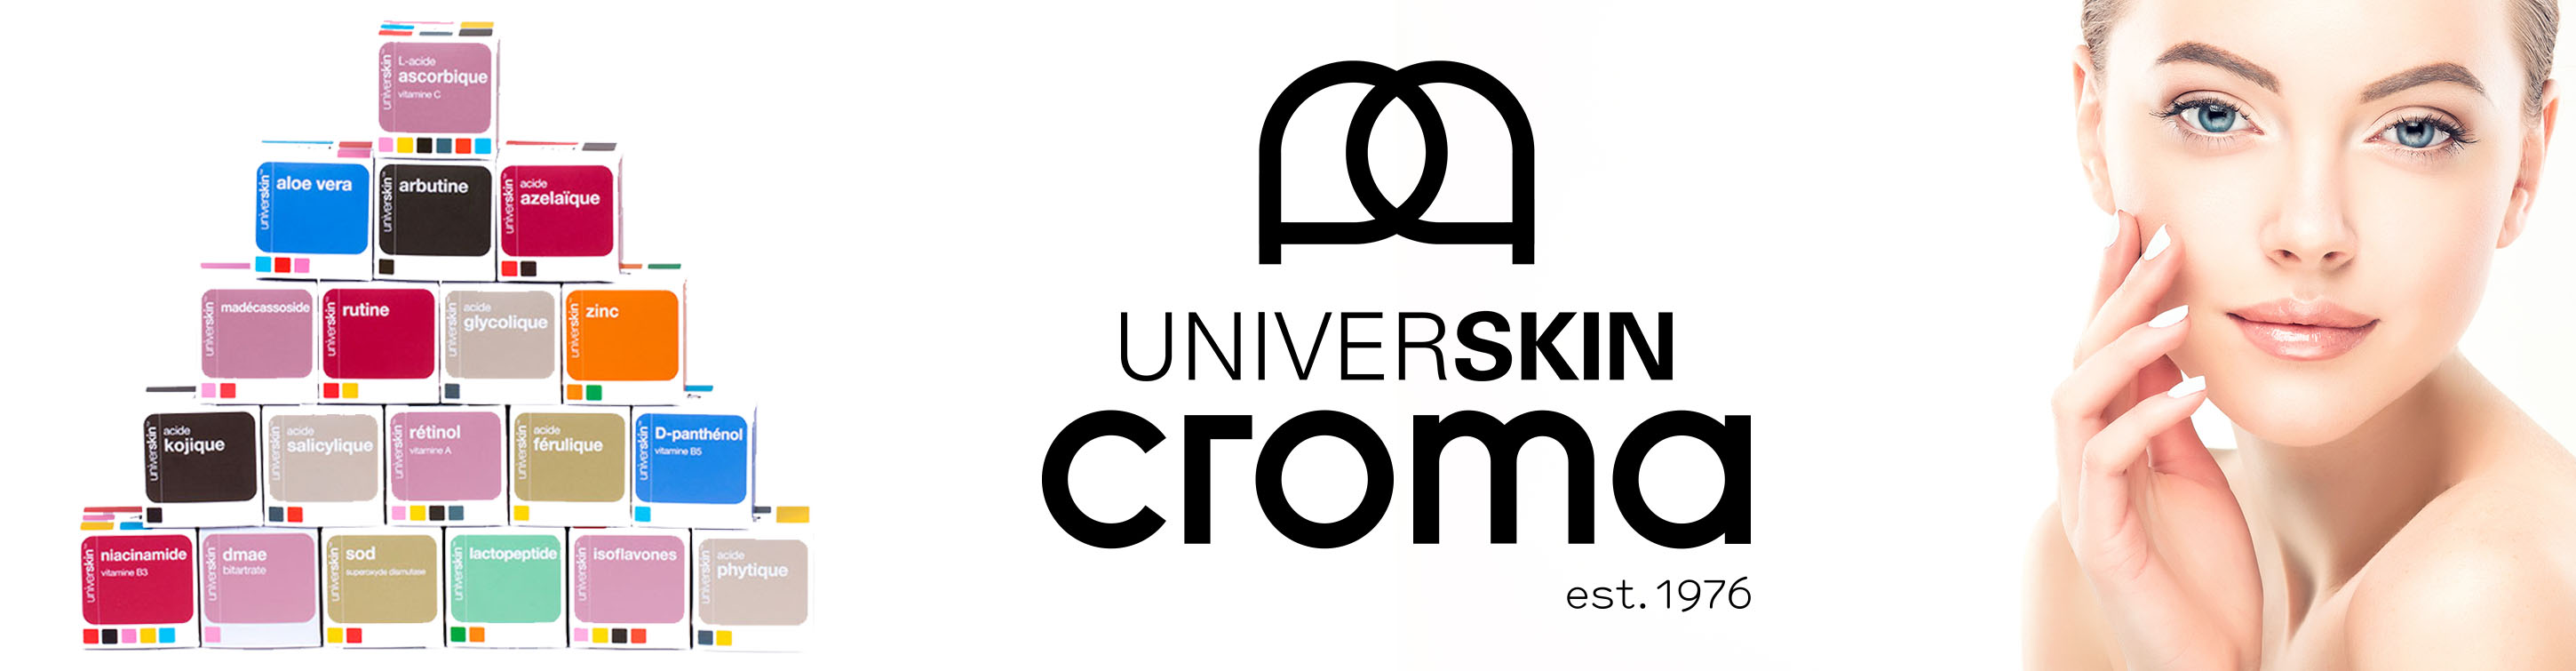 Universkin By Croma - Dr. Cory Torgerson